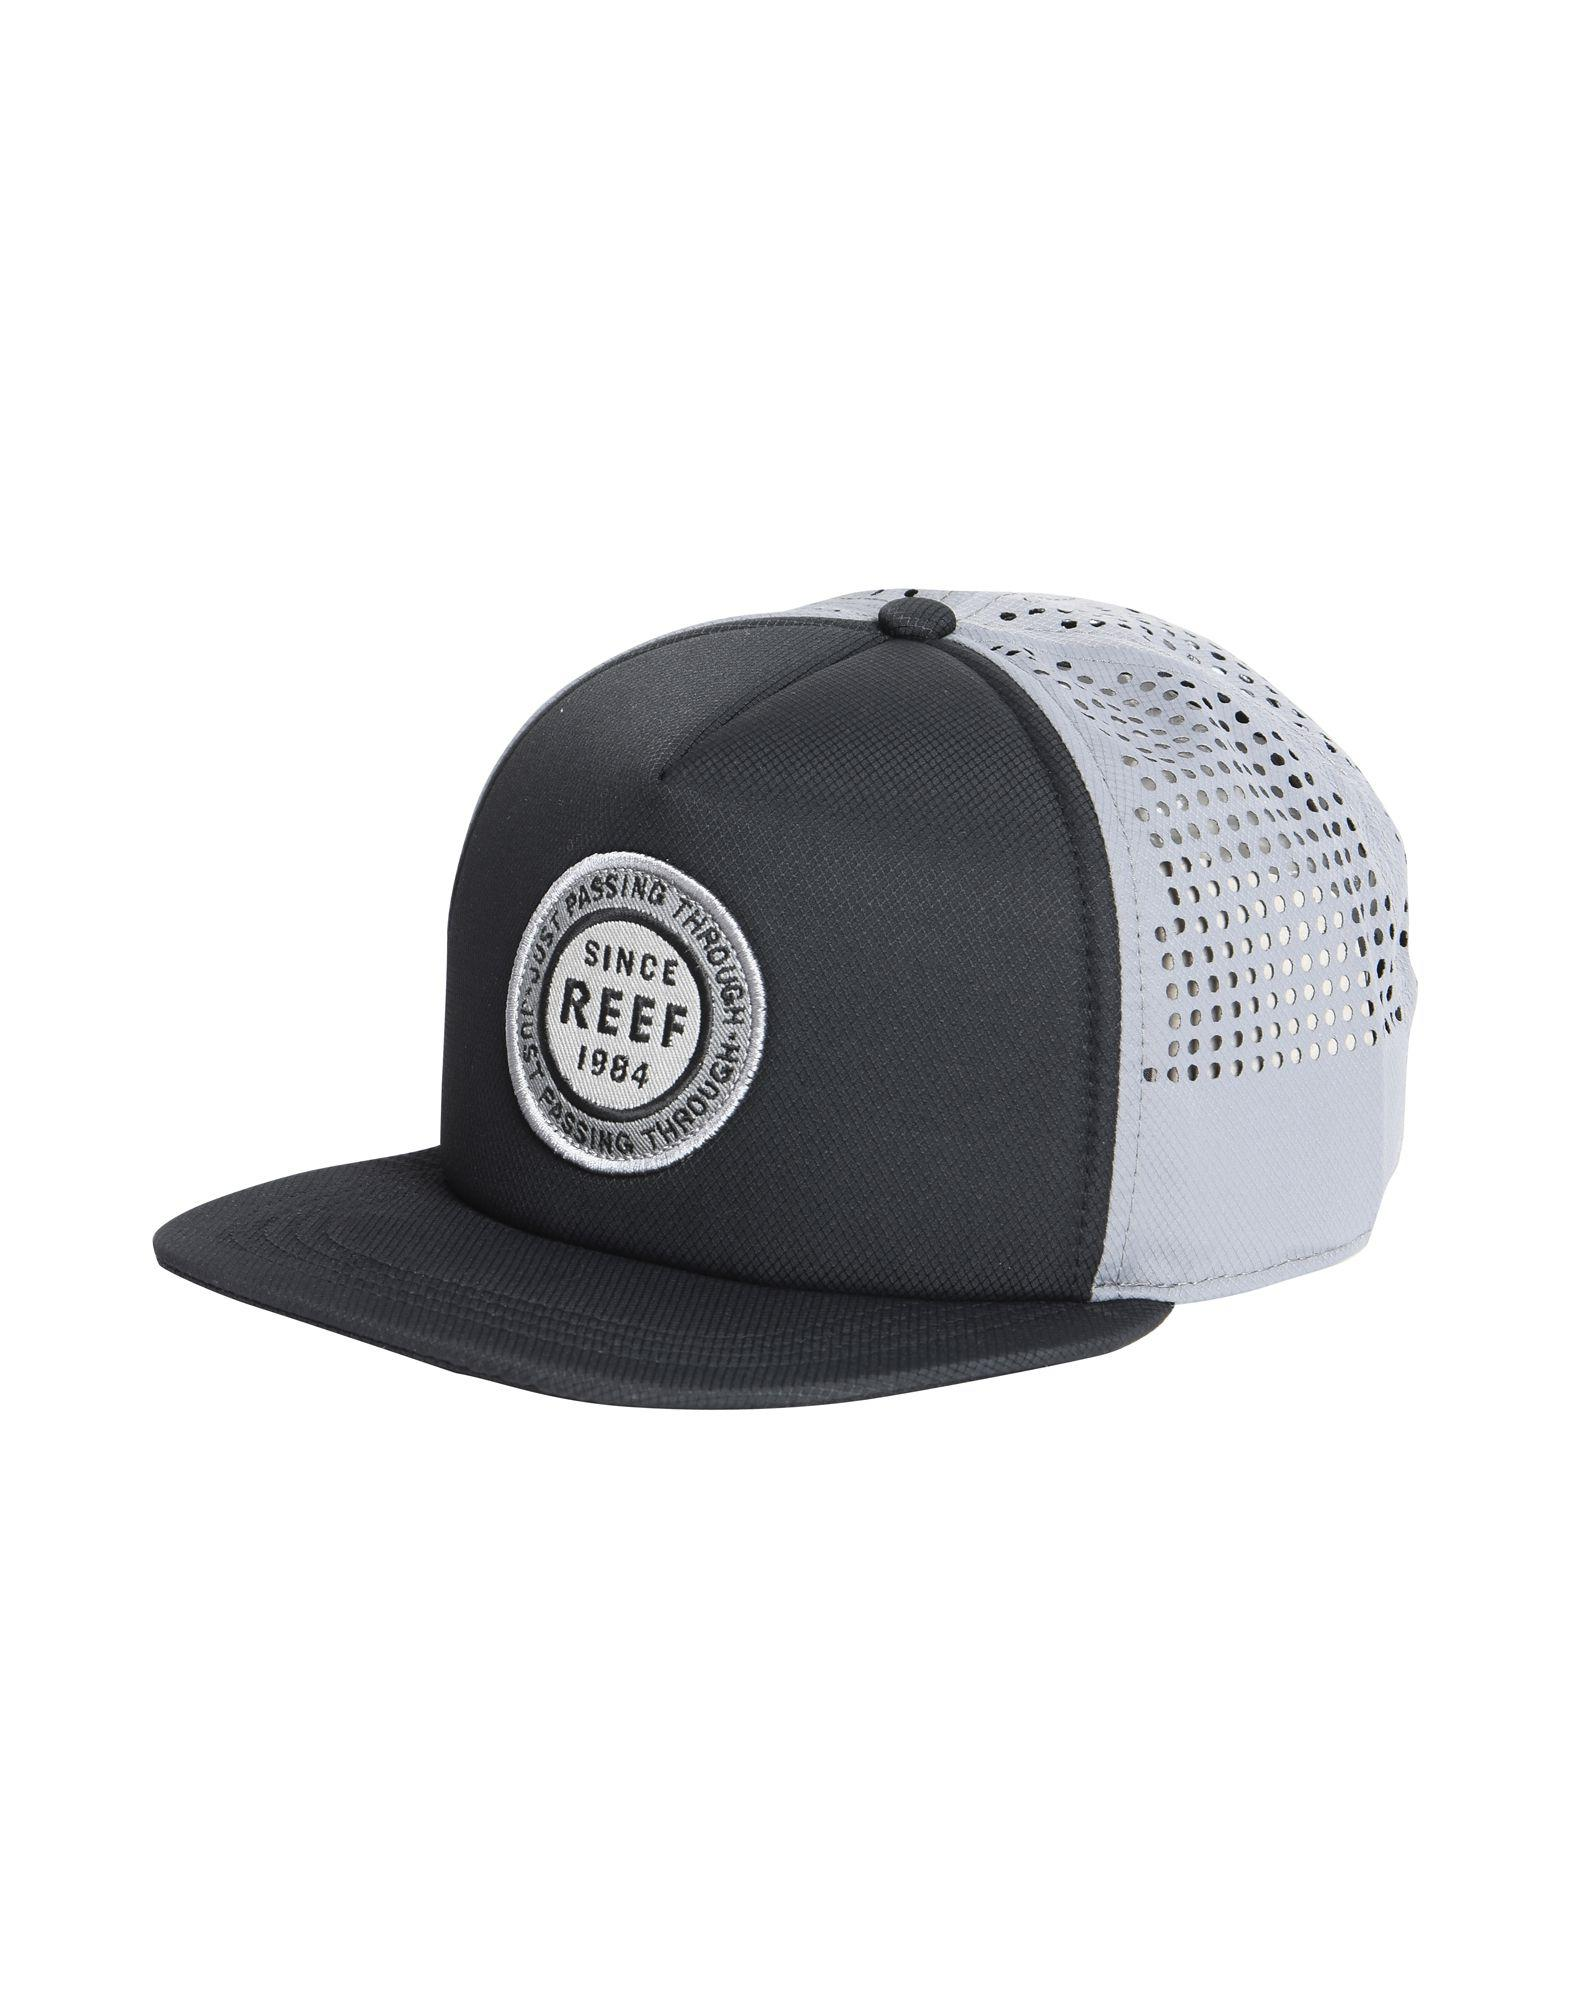 Lyst - Reef Hat in Black for Men 44ef723e781c